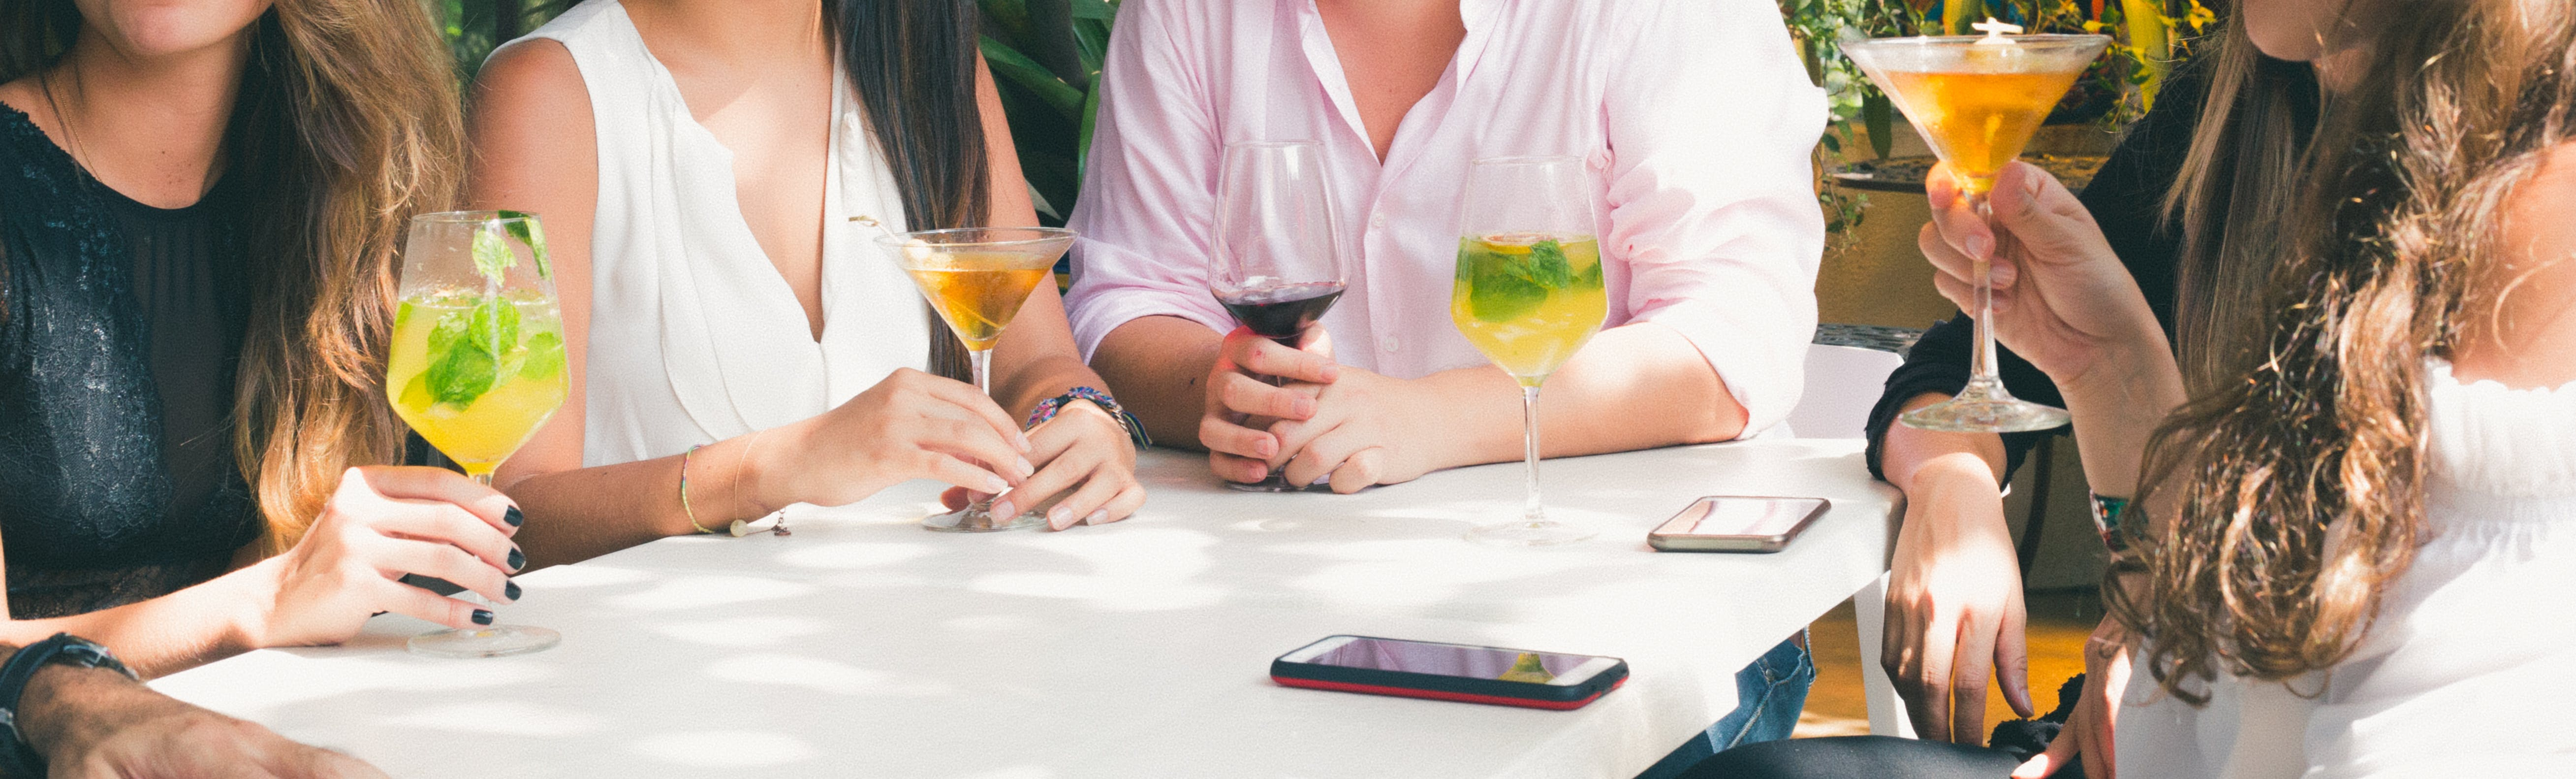 People Drinking Beverage While Sitting Near Table